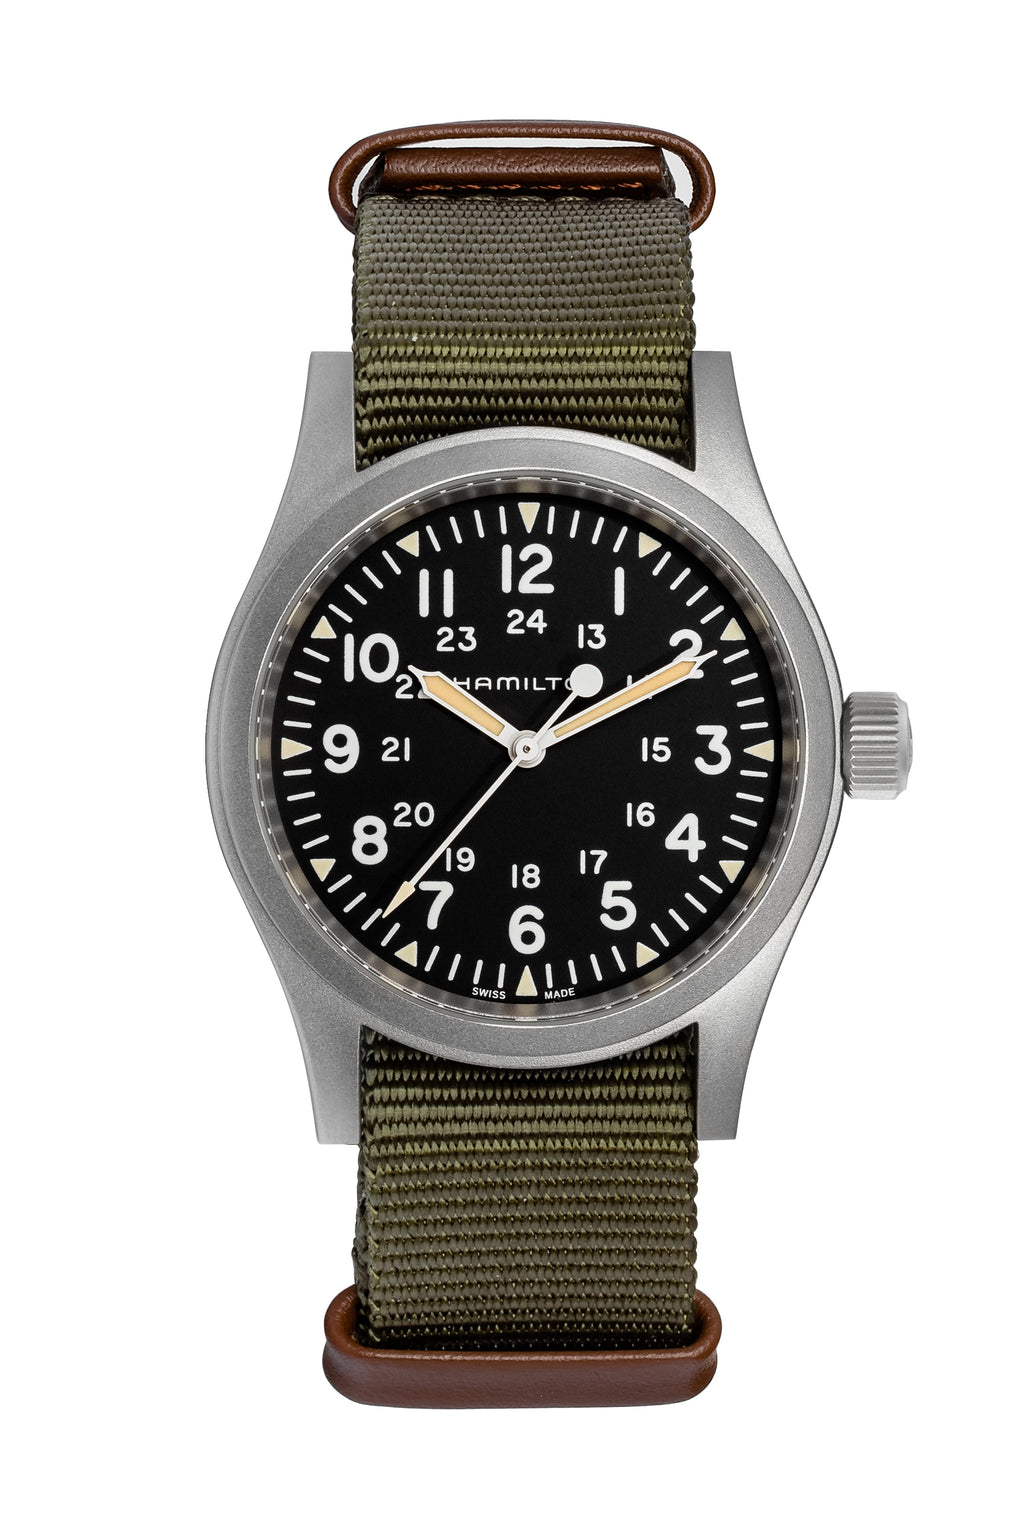 HAMILTON H69429931 Khaki Field Mechanical 38mm Watch - Black Dial